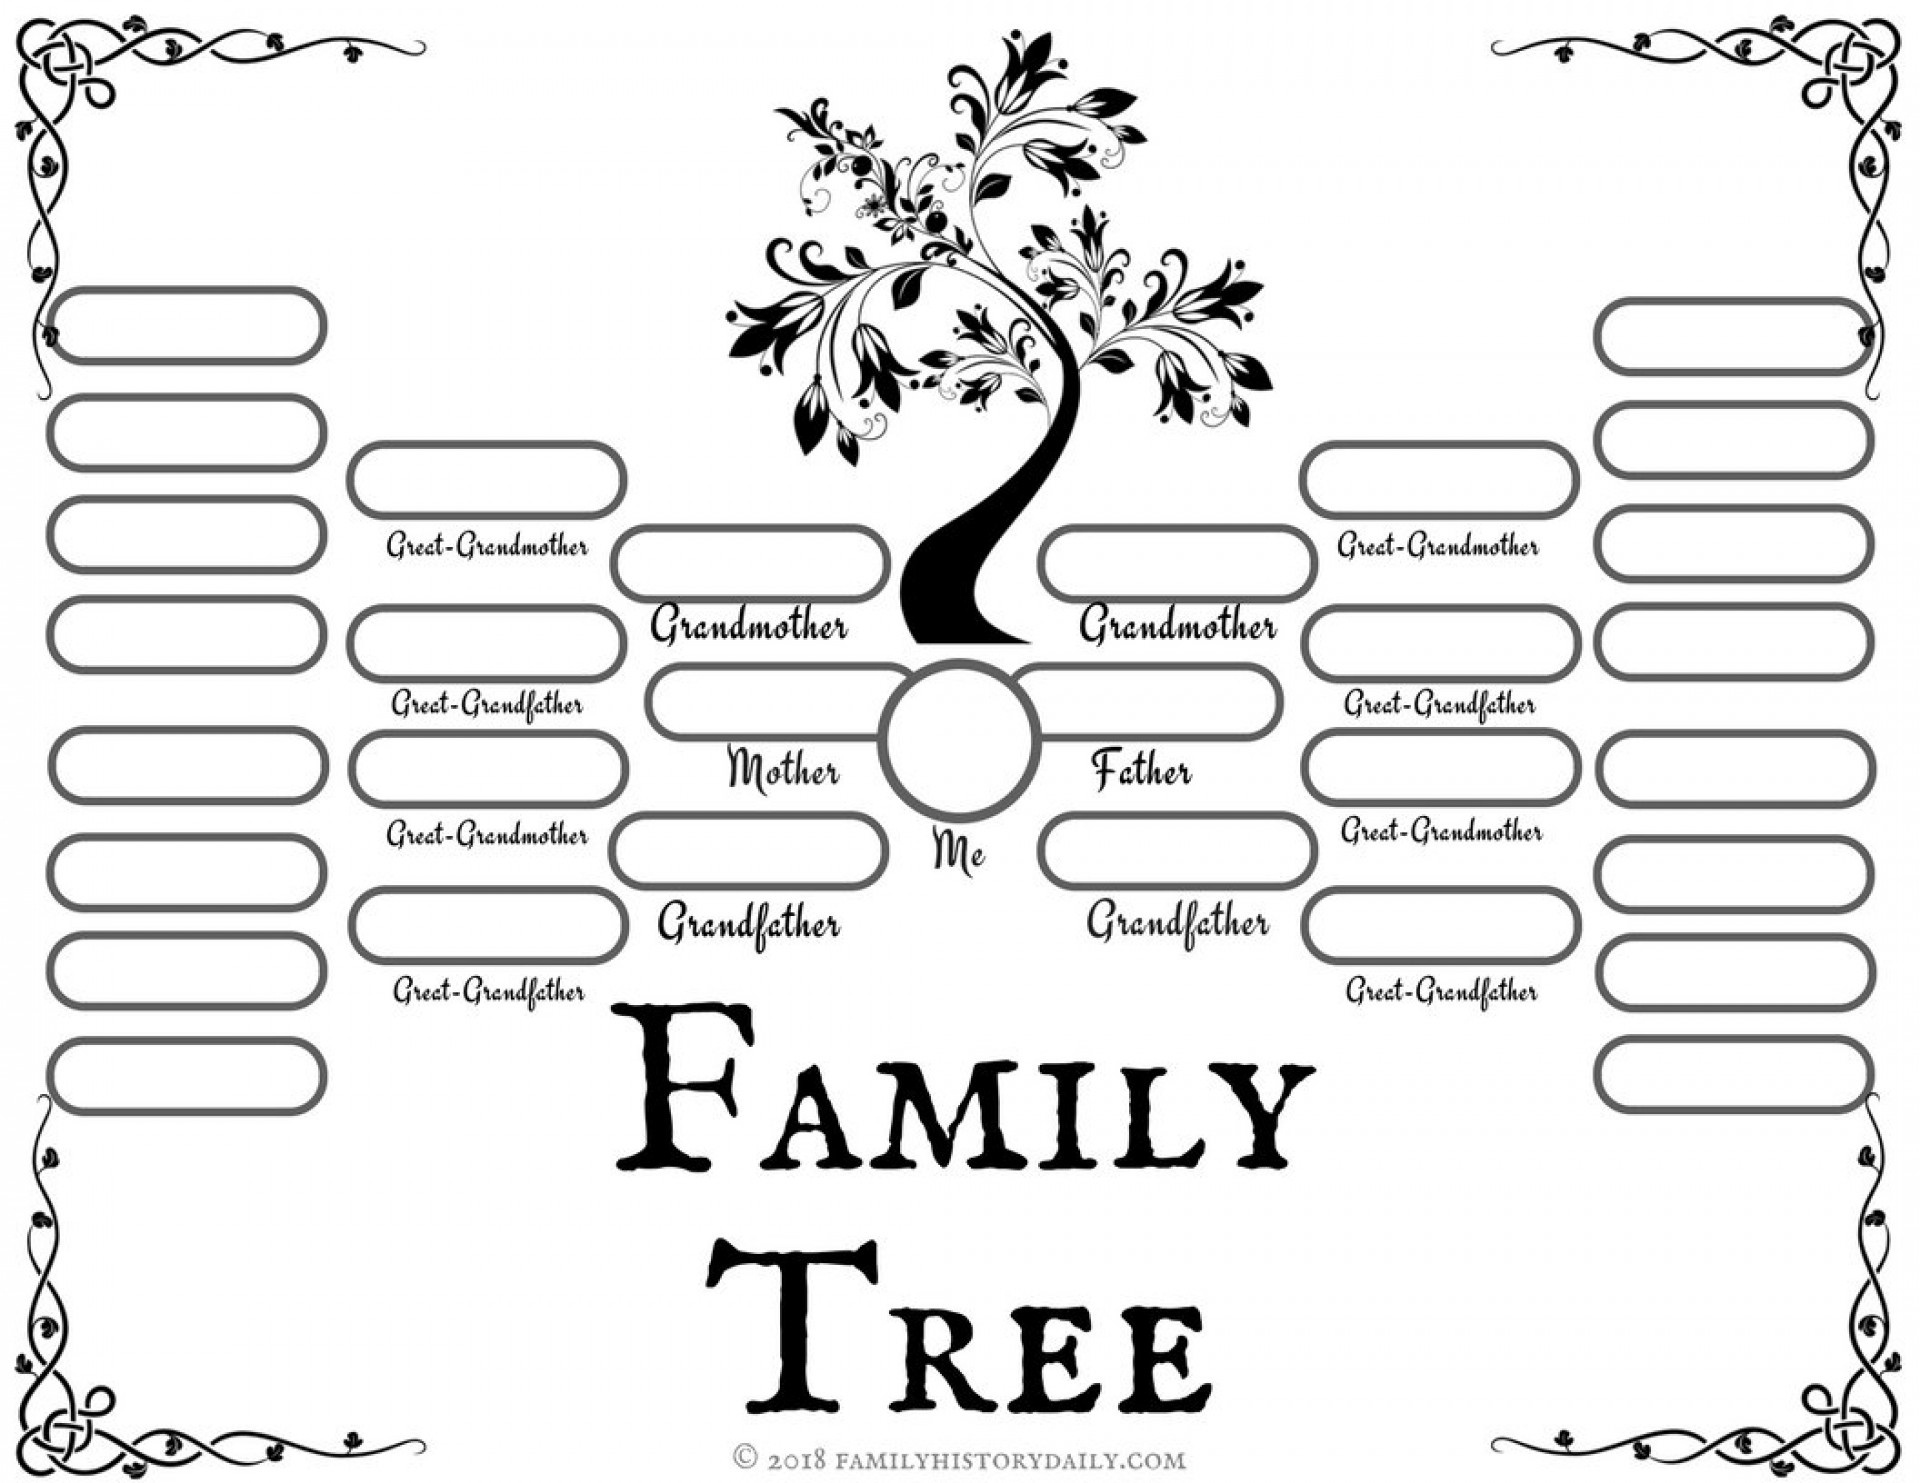 007 Template Ideas Printable Family Shocking Tree Free 6 Generations - Free Printable Family Tree Template 4 Generations